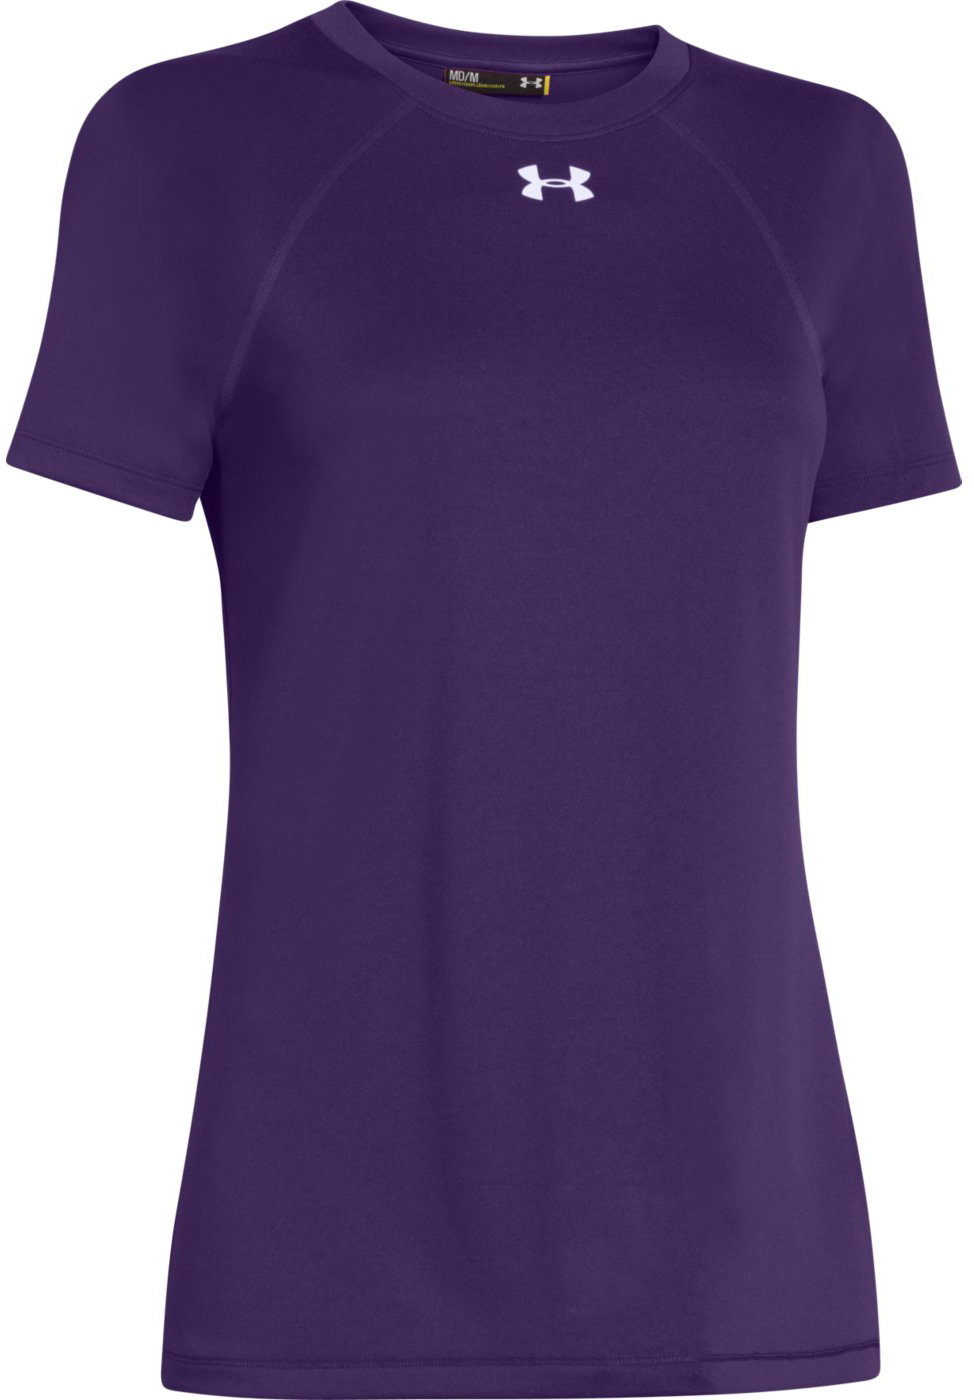 Under armour women 39 s locker t shirt for Under armour printed t shirts